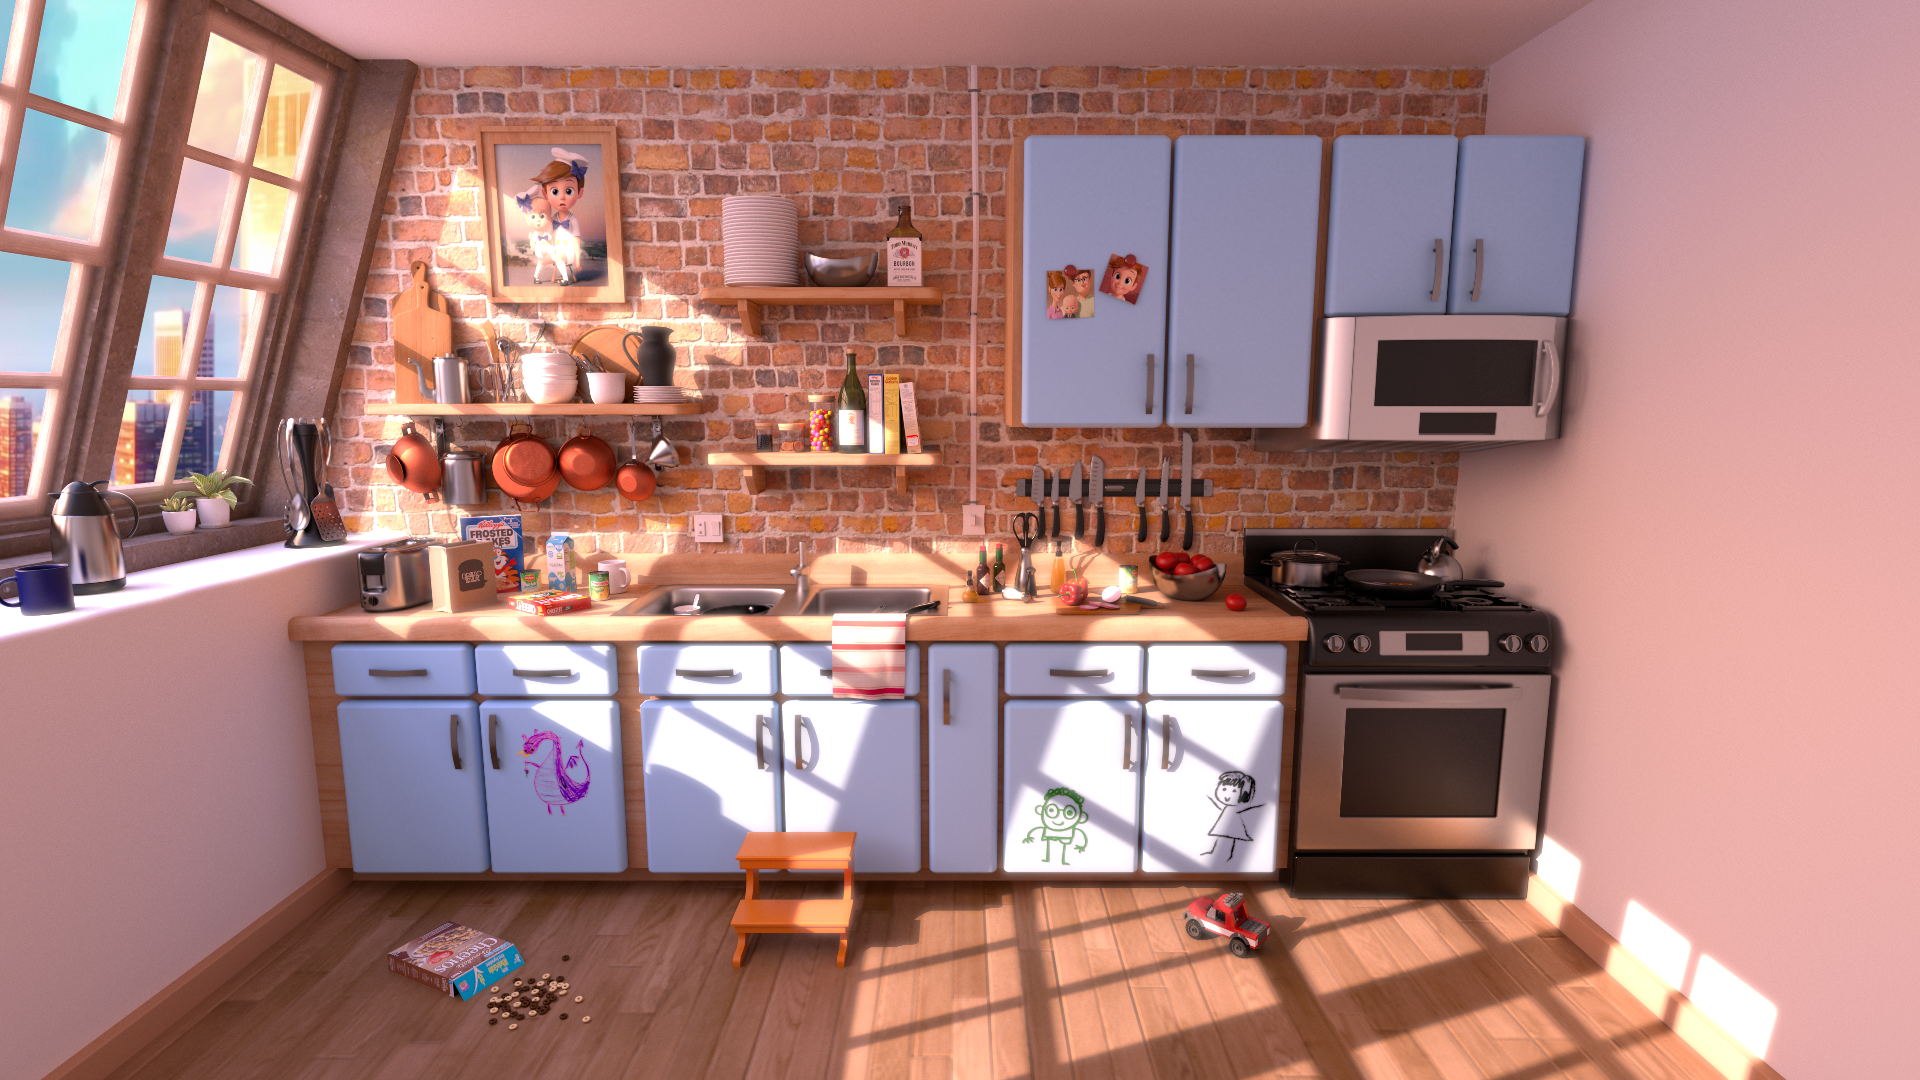 Kitchen.0115.png